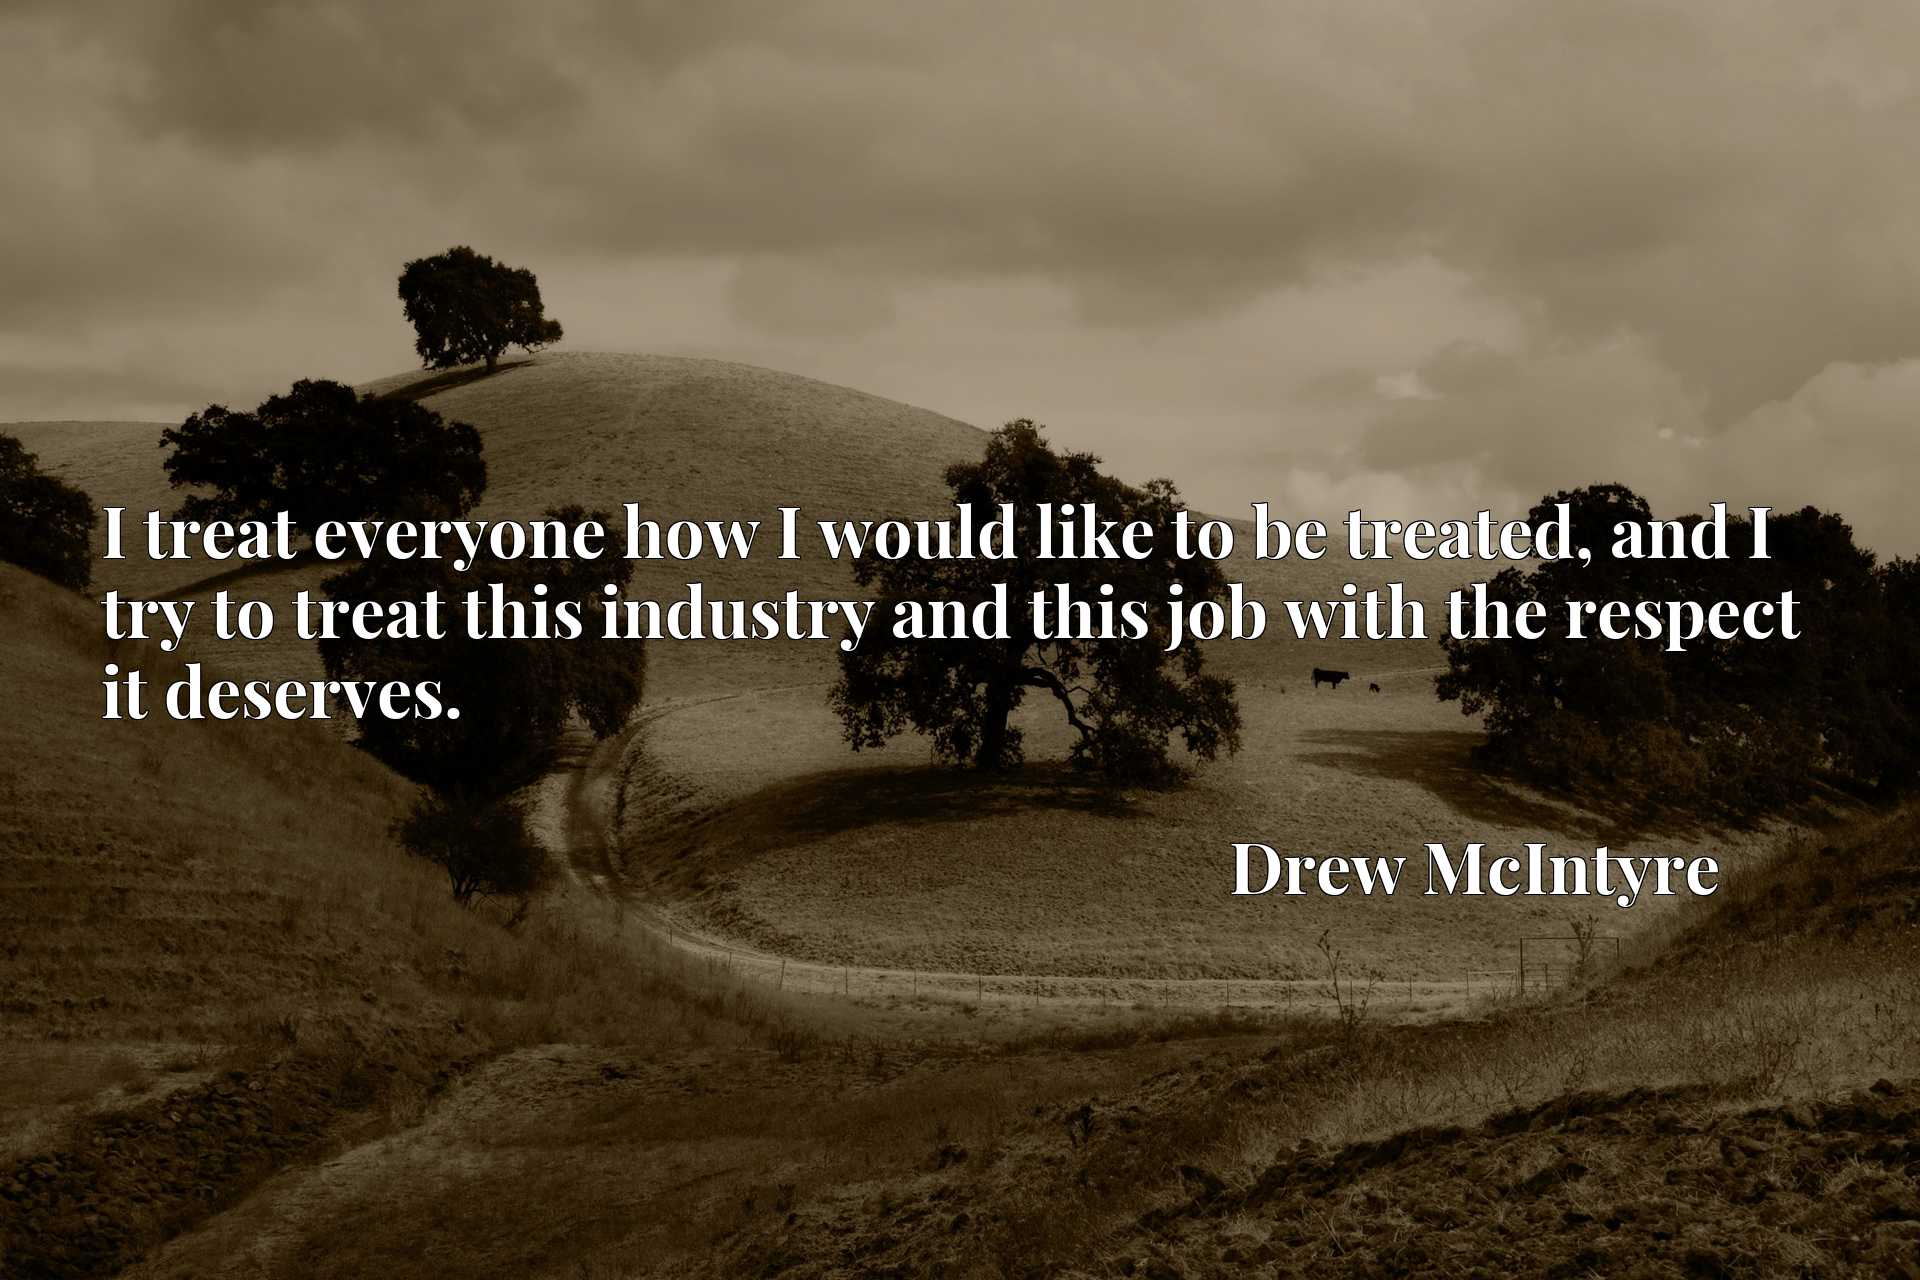 I treat everyone how I would like to be treated, and I try to treat this industry and this job with the respect it deserves.